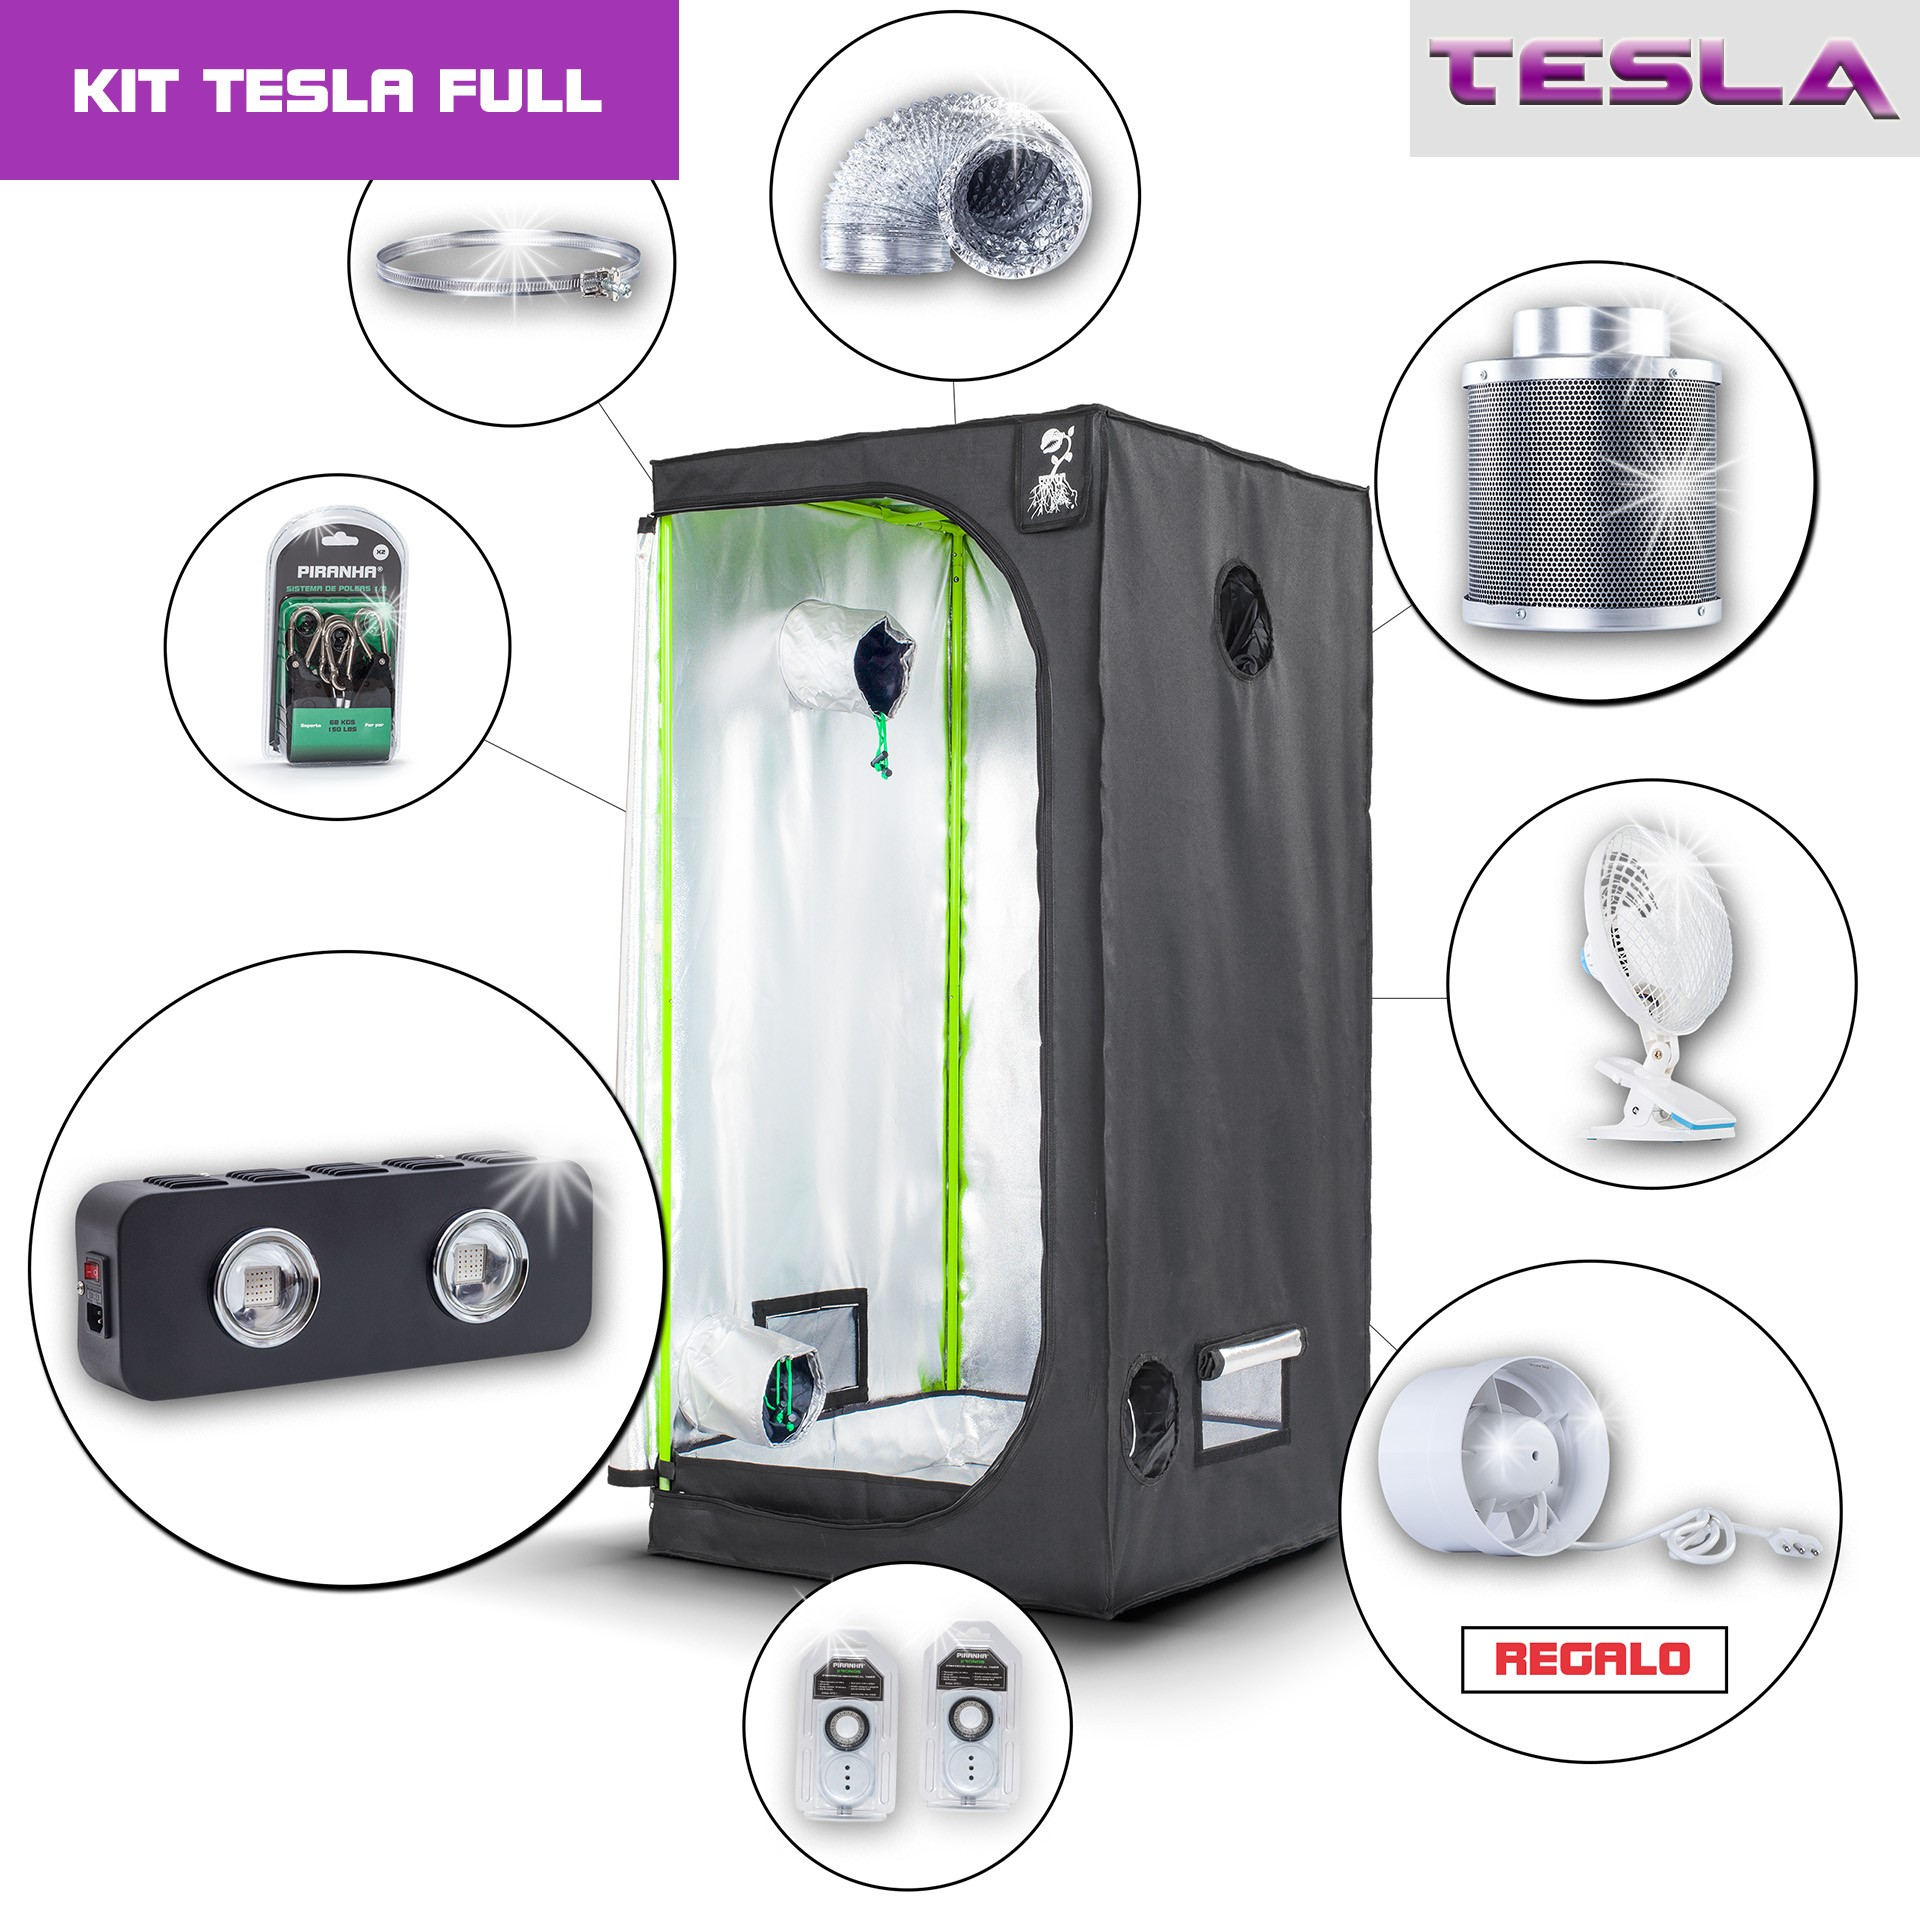 Kit Tesla 80 - T180W Medio